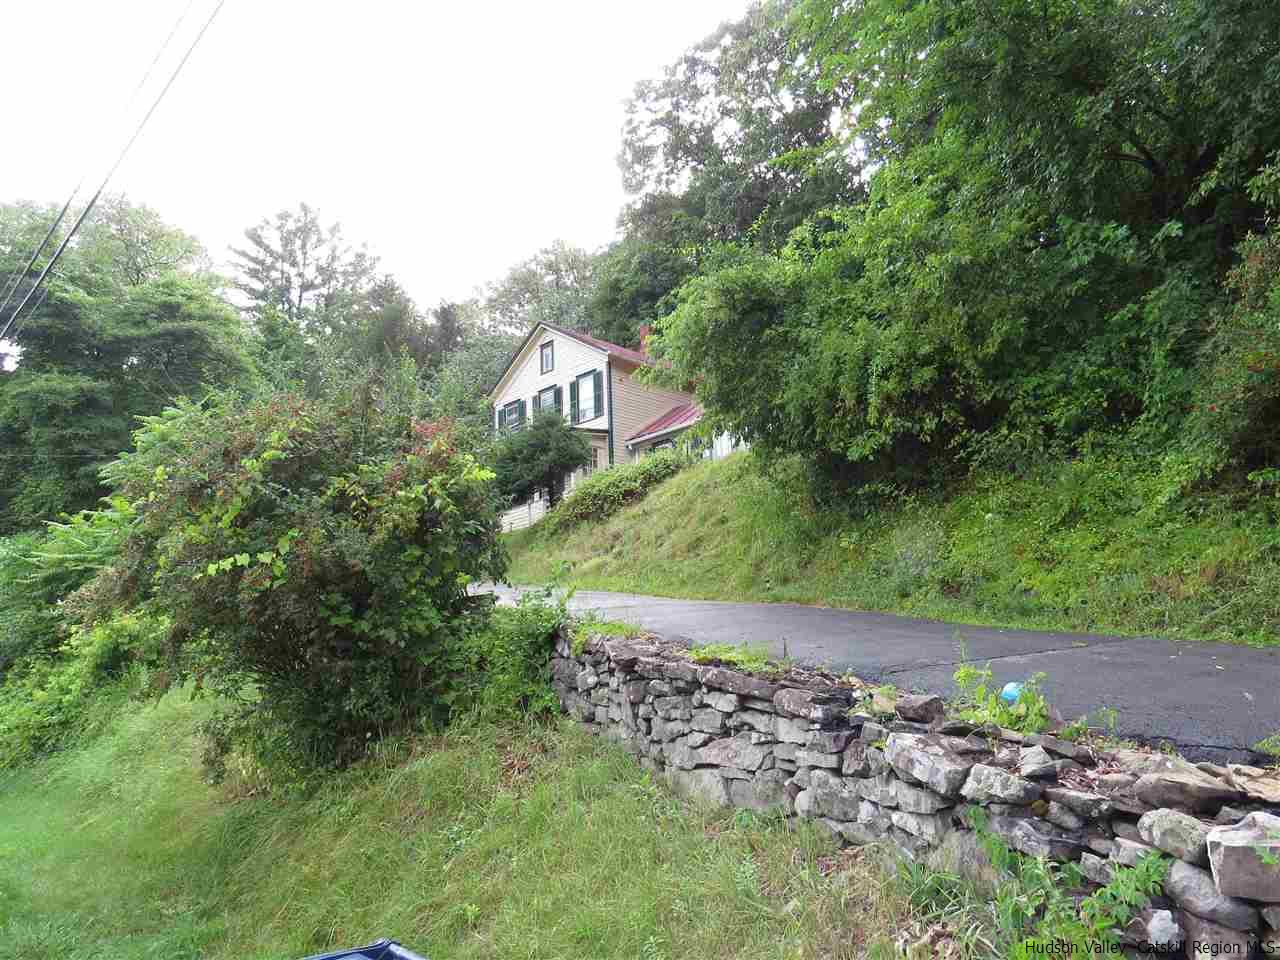 Single Family Home for Sale at 1437 Route 213 1437 Route 213 Ulster Park, New York 12487 United States